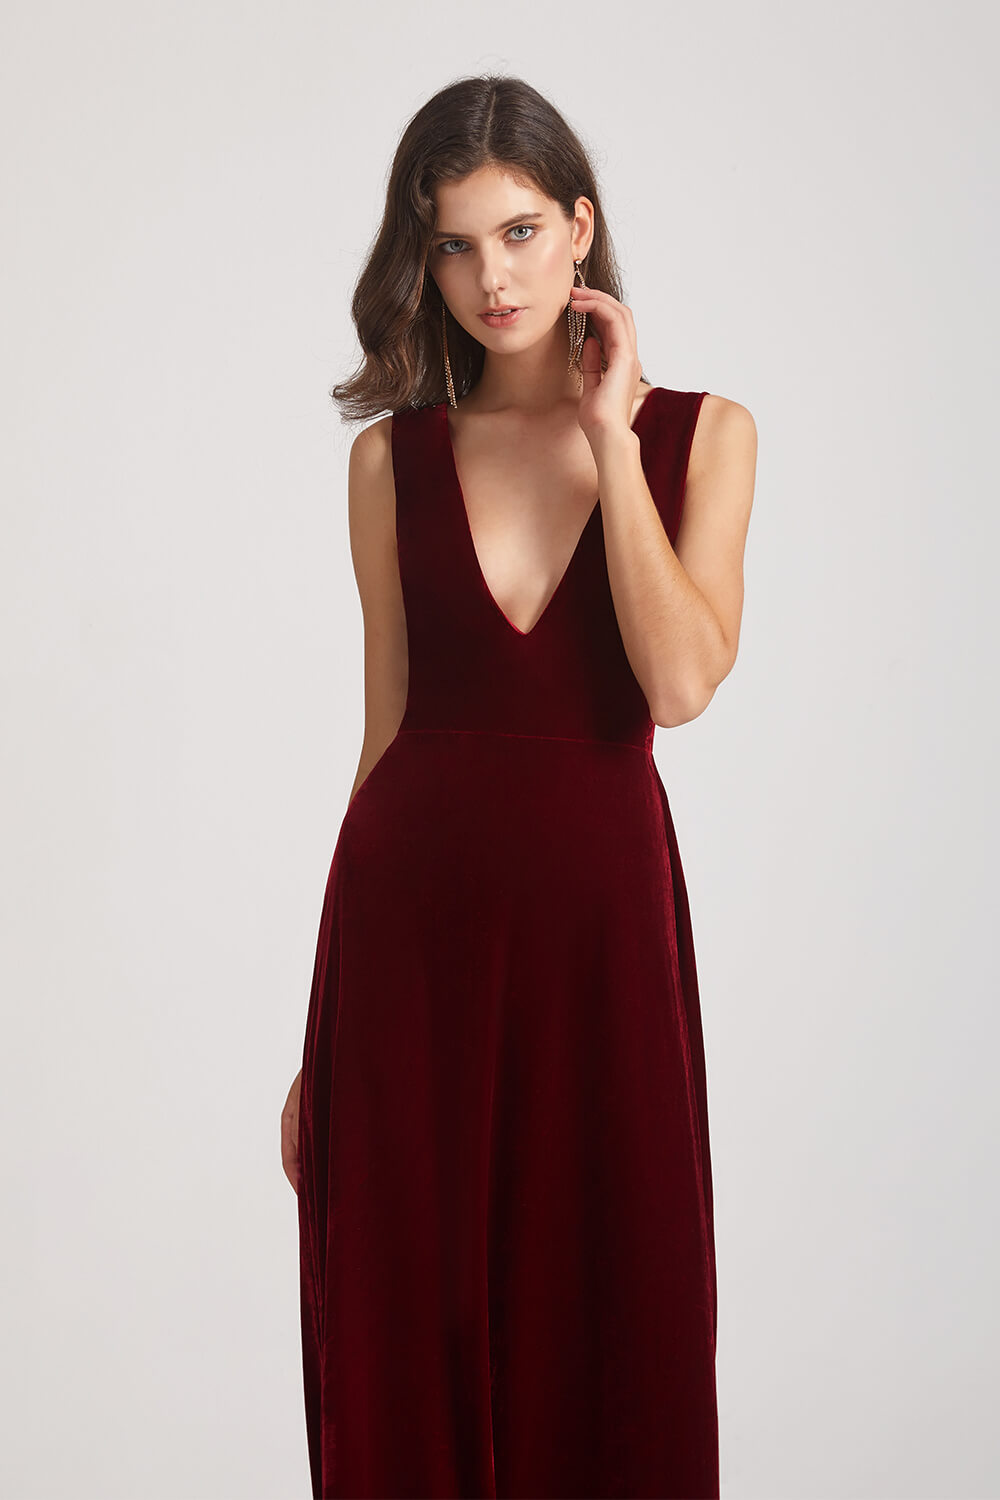 Sexy Velvet Bridesmaid Dress